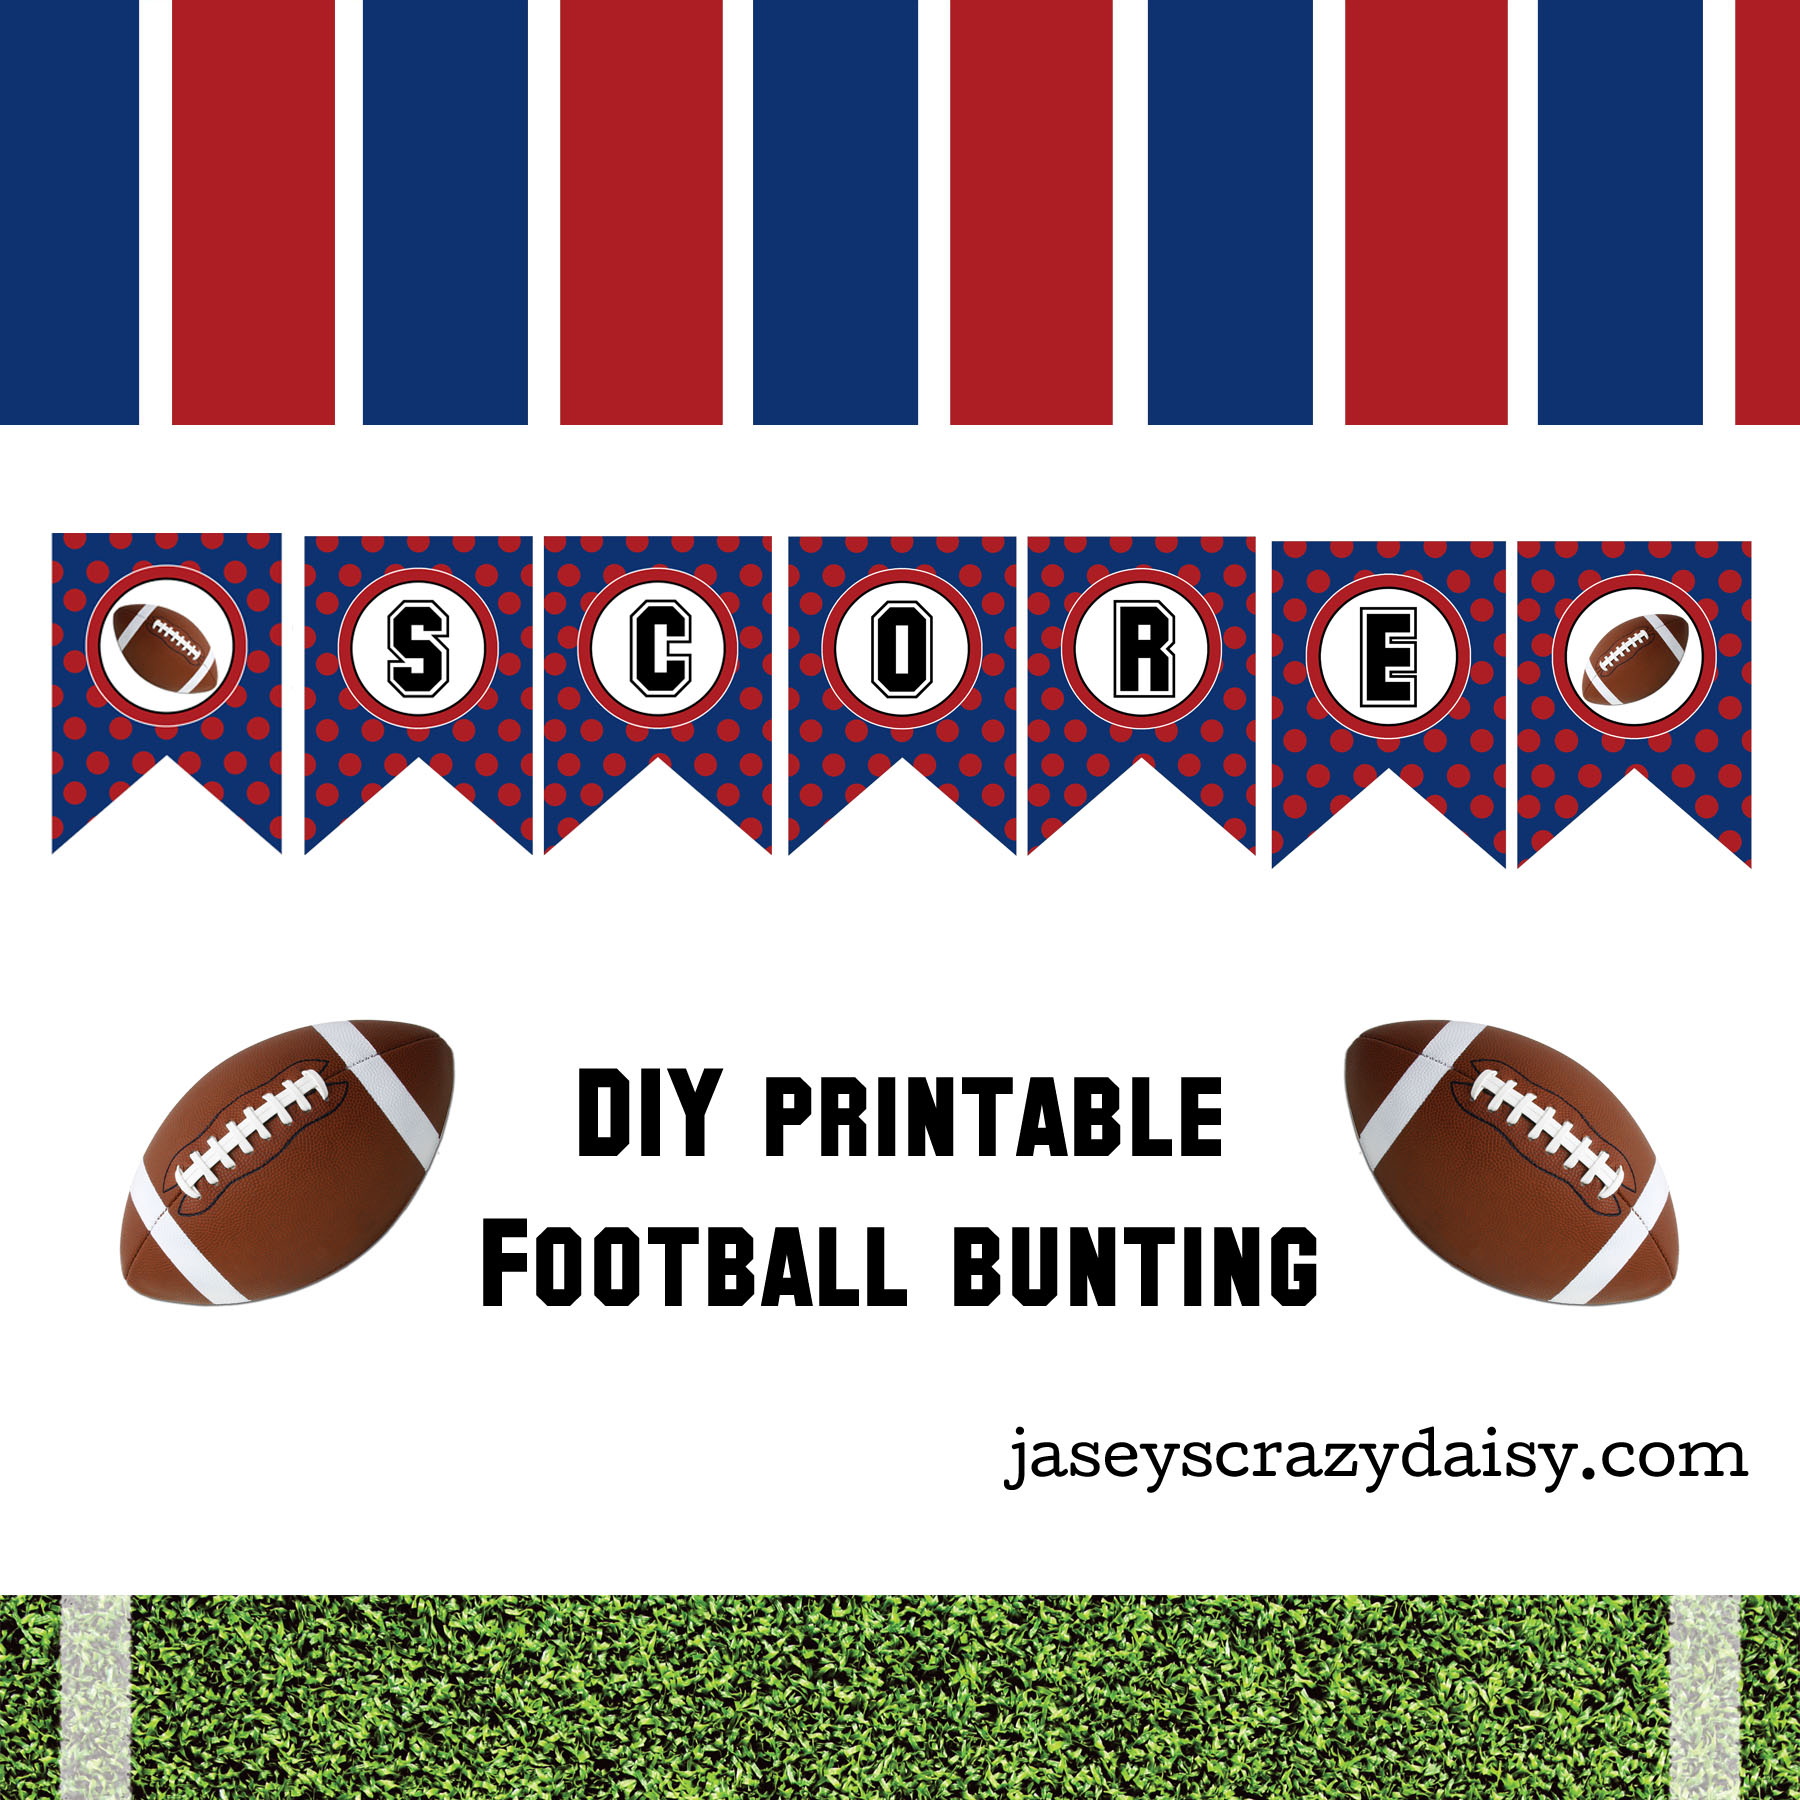 picture relating to Football Printable called Do it yourself Printable Rating Crimson and Blue Soccer Bunting- Quick Down load - Jaseys Mad Daisy